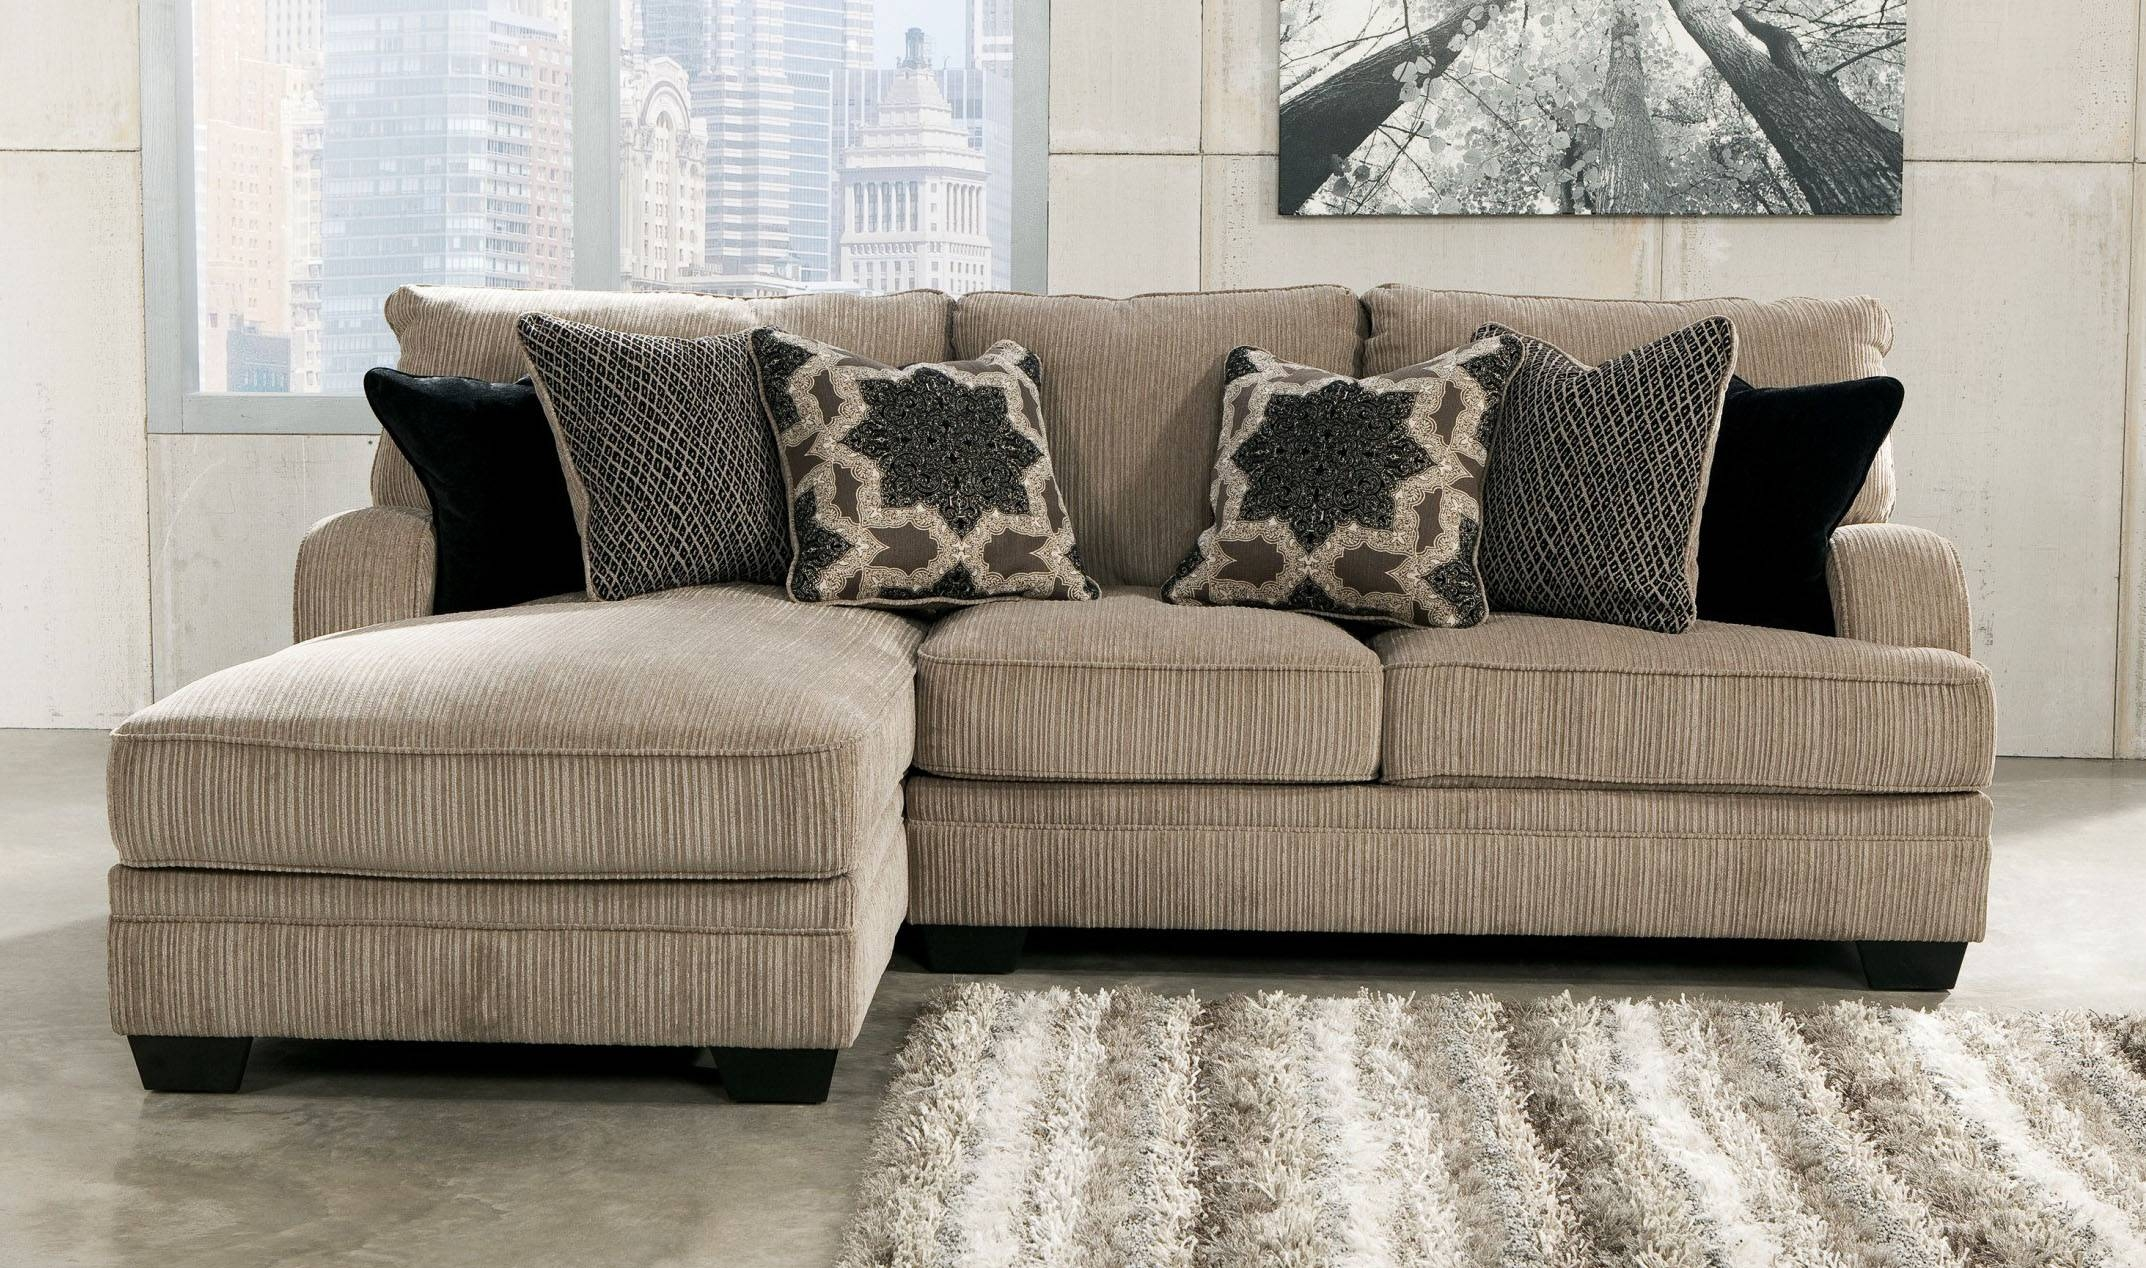 Contemporary Sectional Sofas For Small Spaces Charming Small Scale pertaining to Small Scale Sofas (Image 1 of 15)